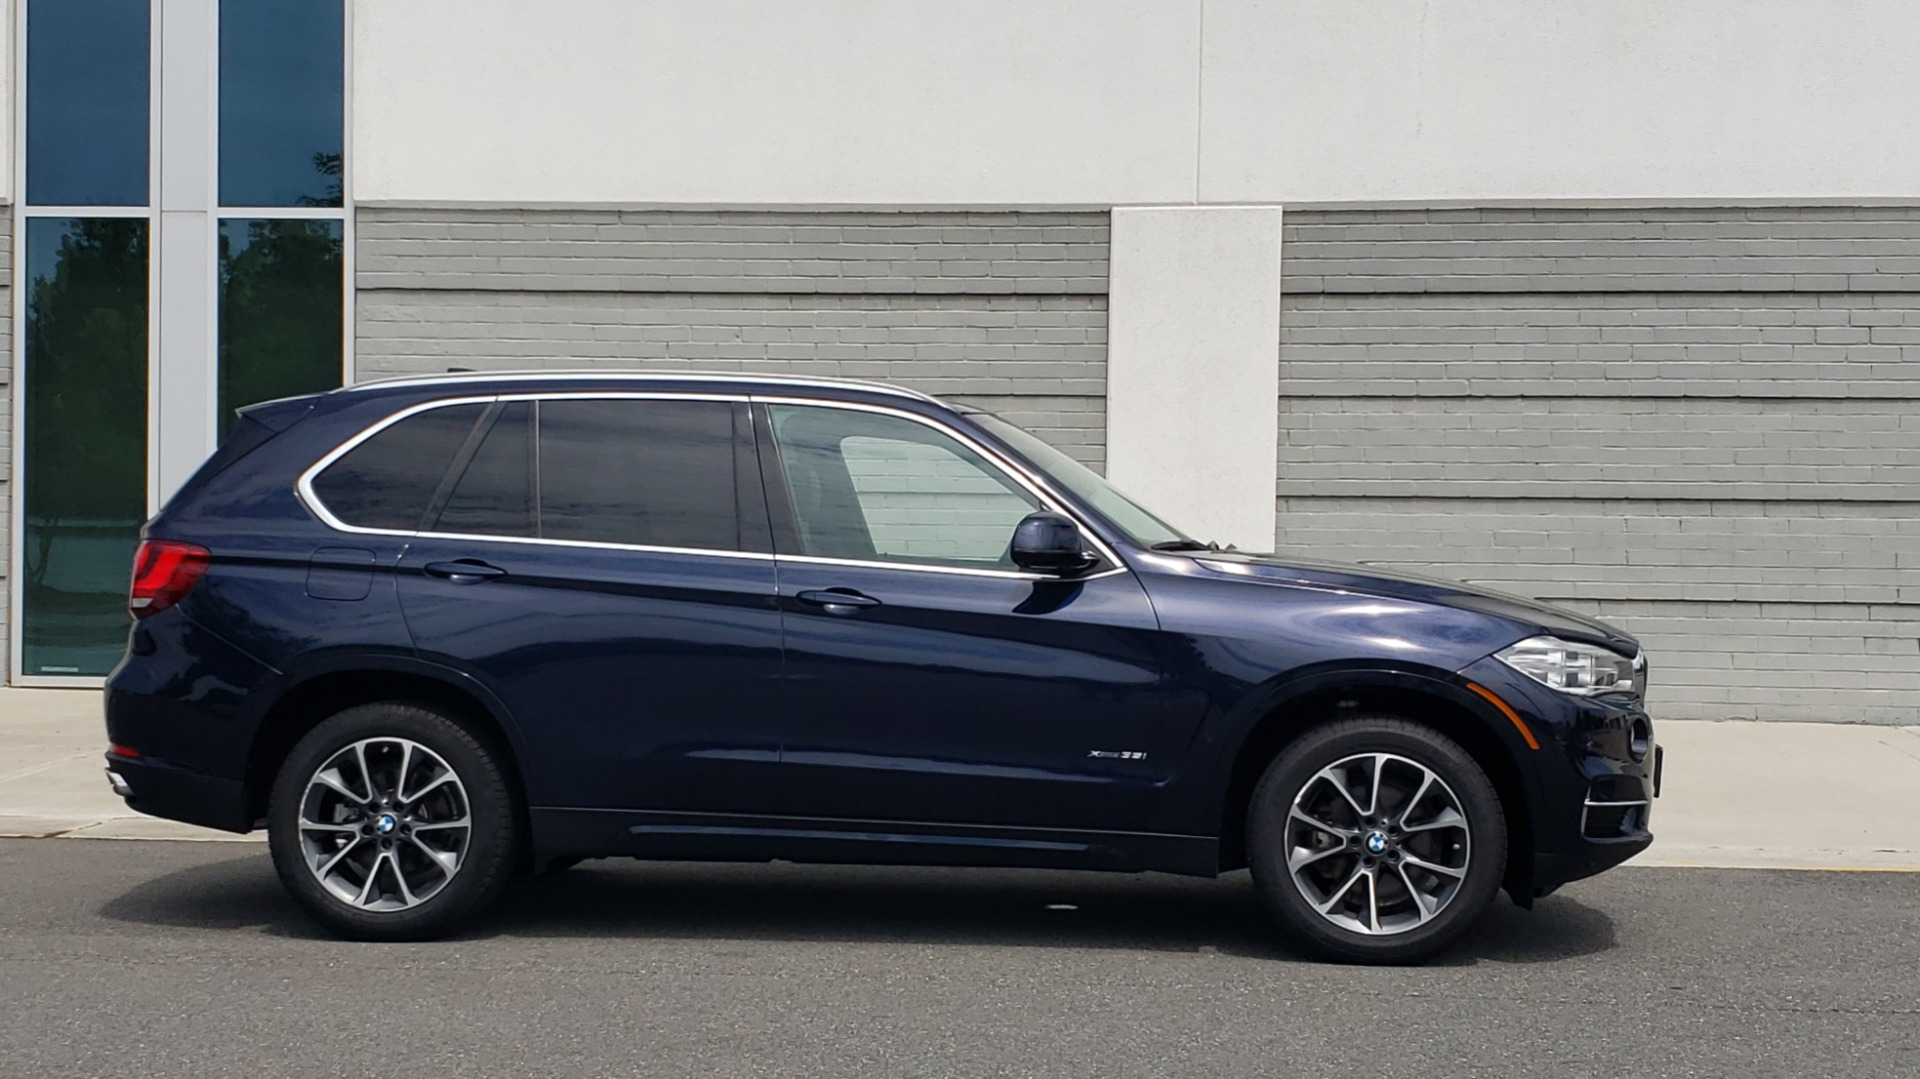 Used 2018 BMW X5 XDRIVE35I PREMIUM / LUXURY / DRVR ASST / HUD / LANE WARNING / REARVIEW for sale $43,695 at Formula Imports in Charlotte NC 28227 9